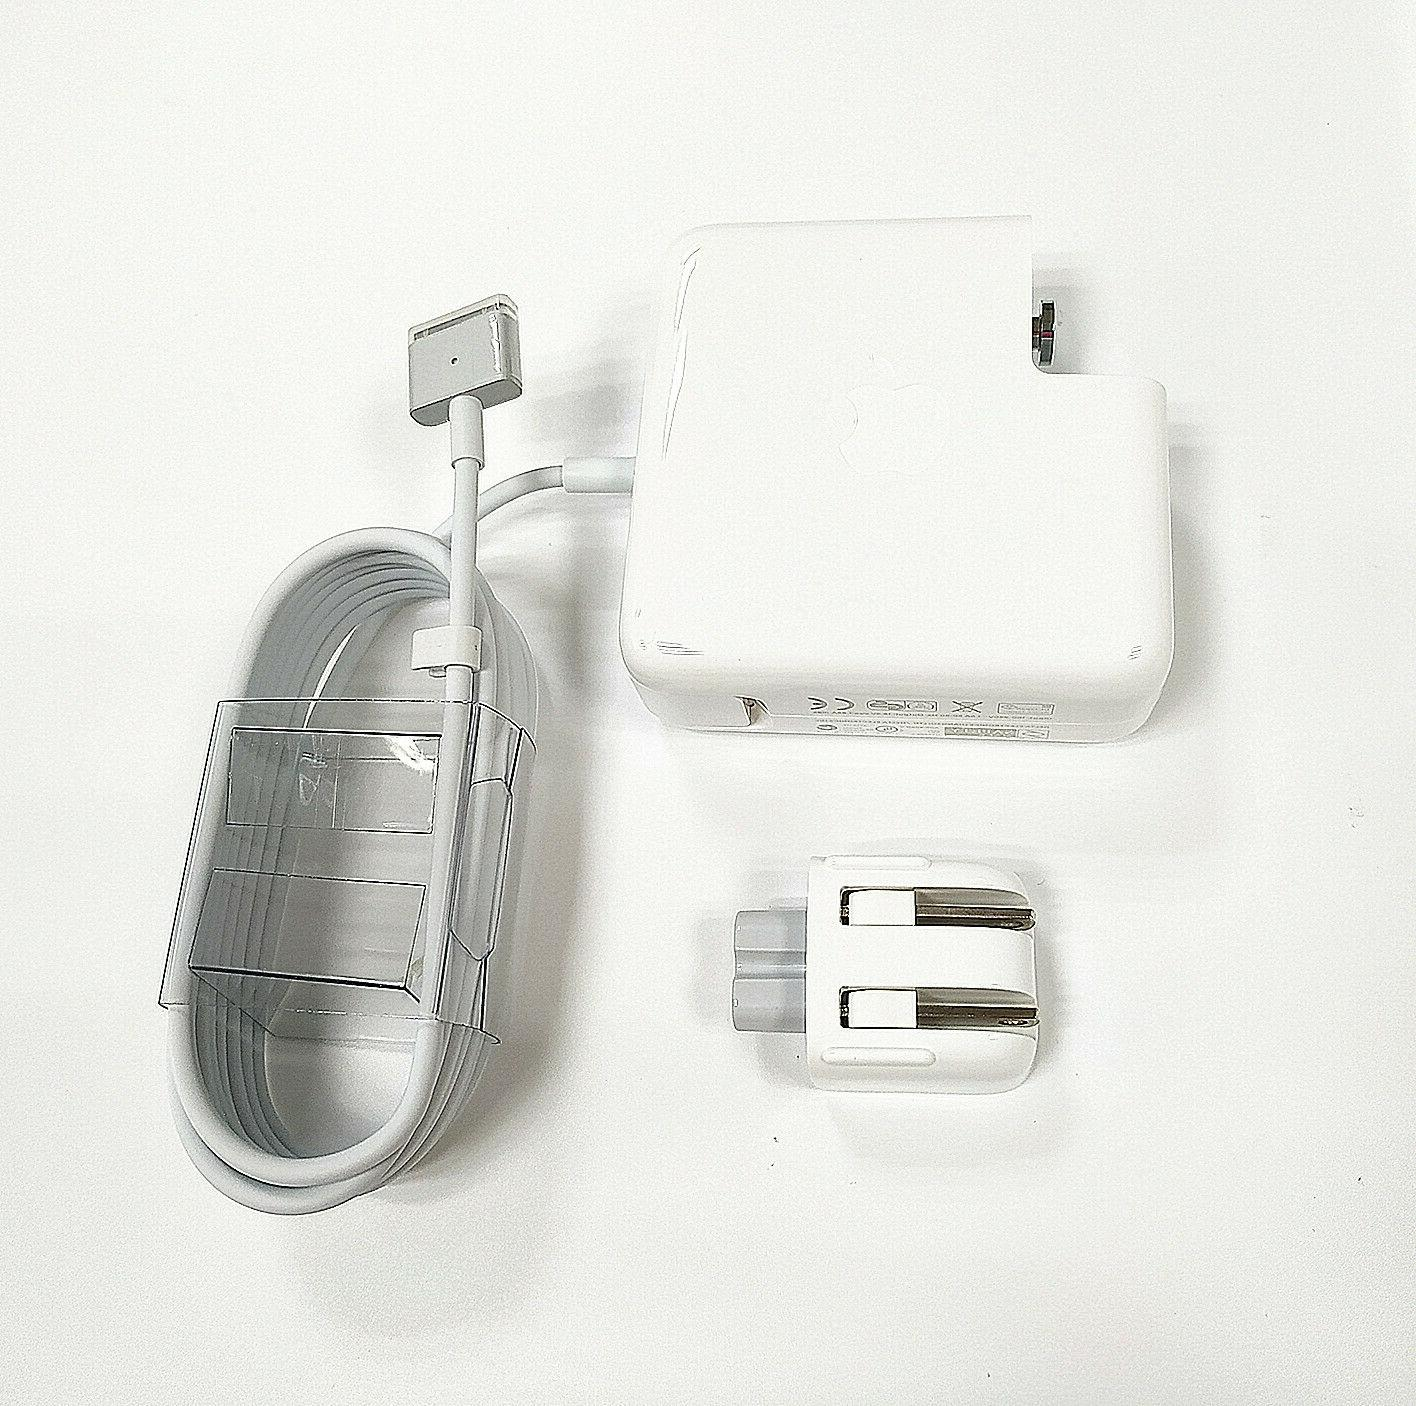 Apple 60W MagSafe 2 Power Adapter for 13inch MacBook display OEM